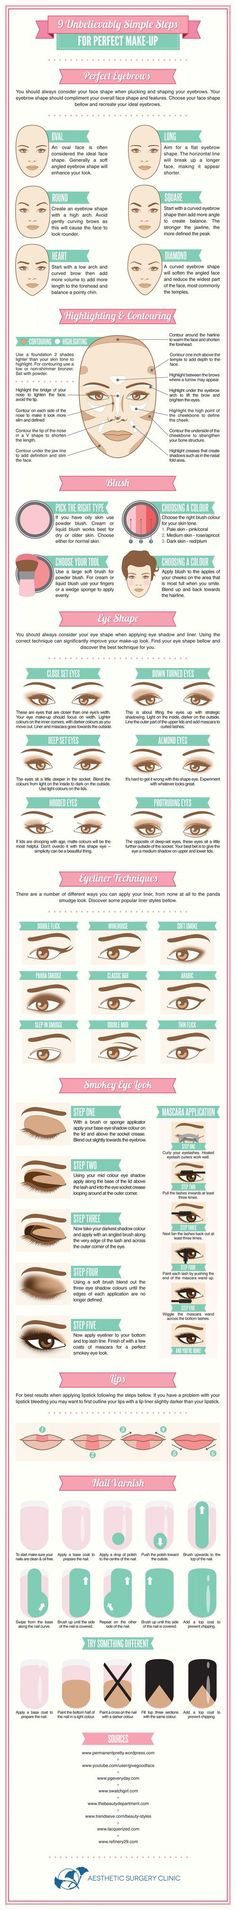 9 Unbelievably Simple Steps For Perfect Make-Up / Visual.ly